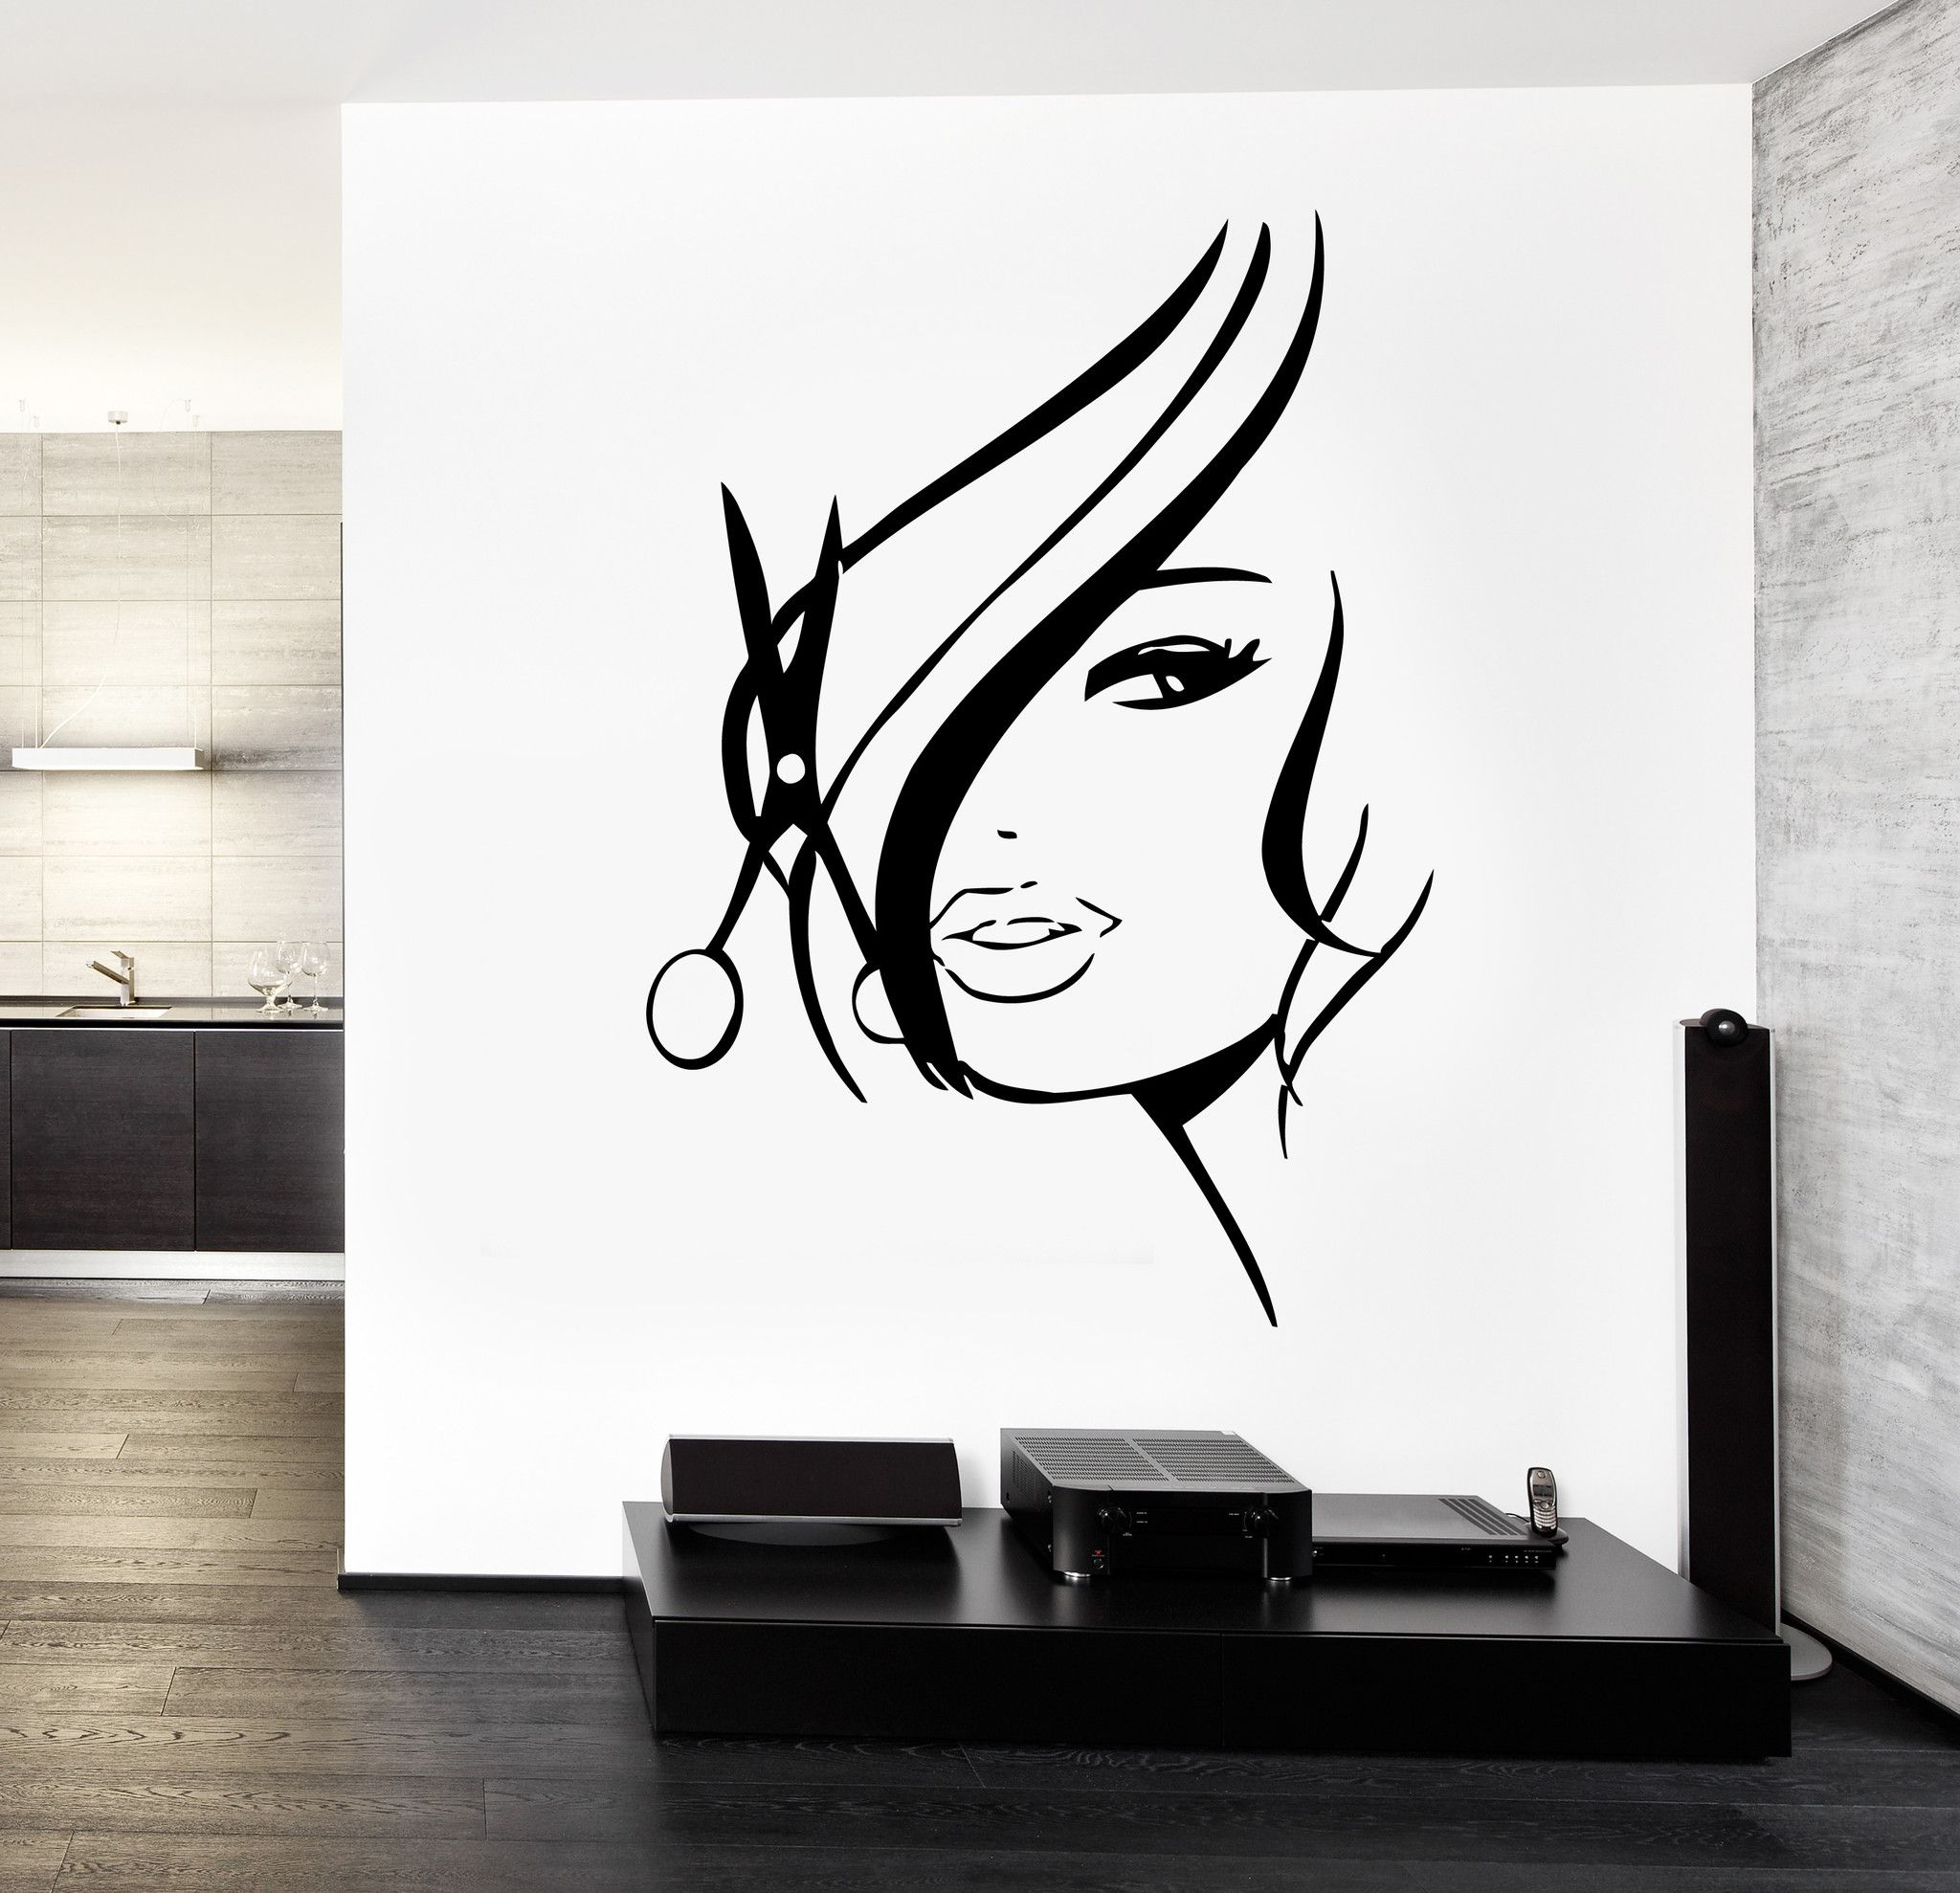 Vinyl Wall Decal Wall Decal Hair Salon Barbershop Hair Cuttery Unique Gift